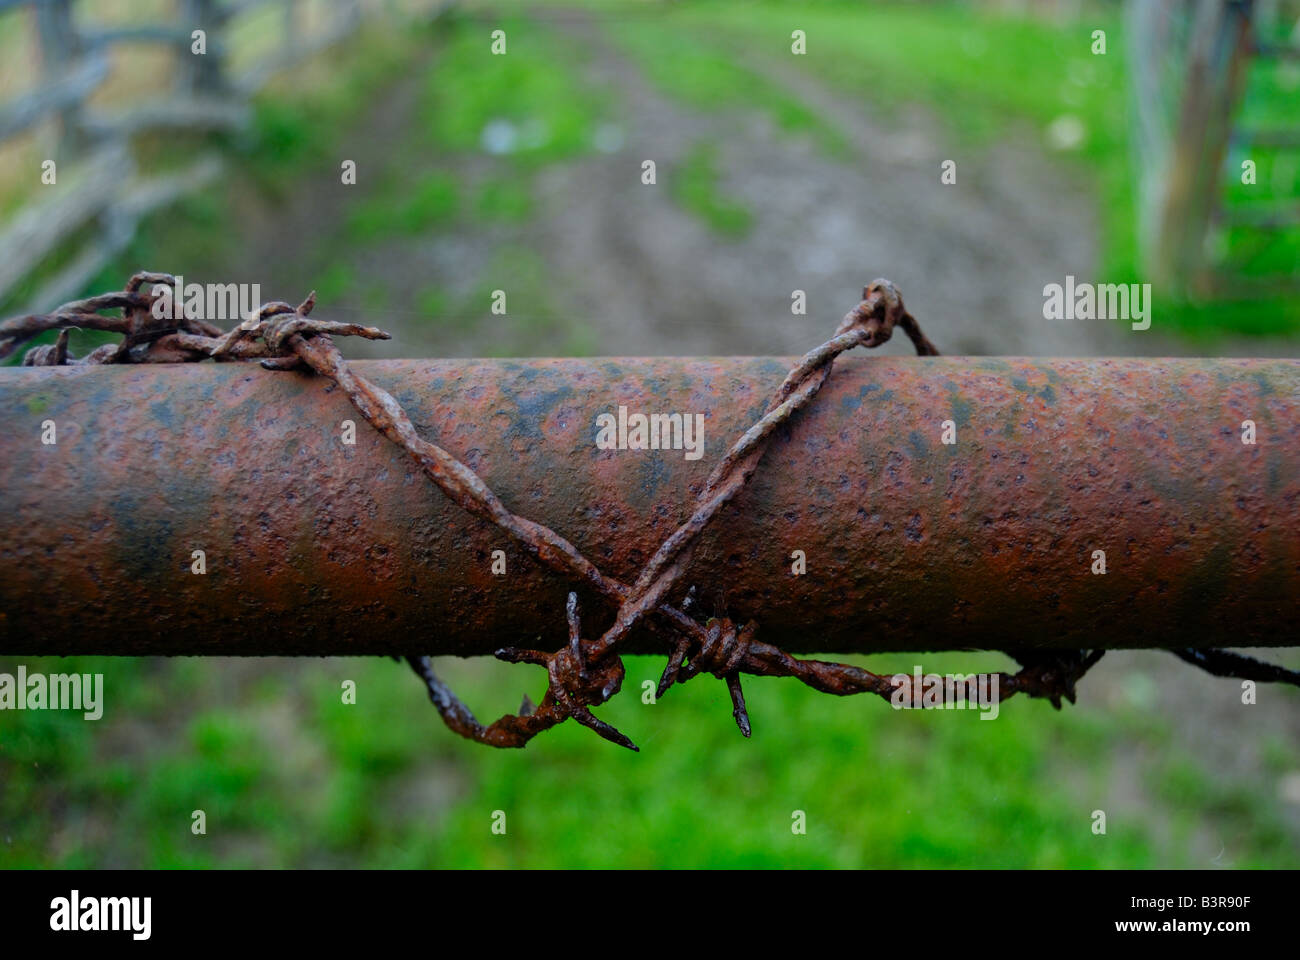 Barb wire on a tube - Stock Image